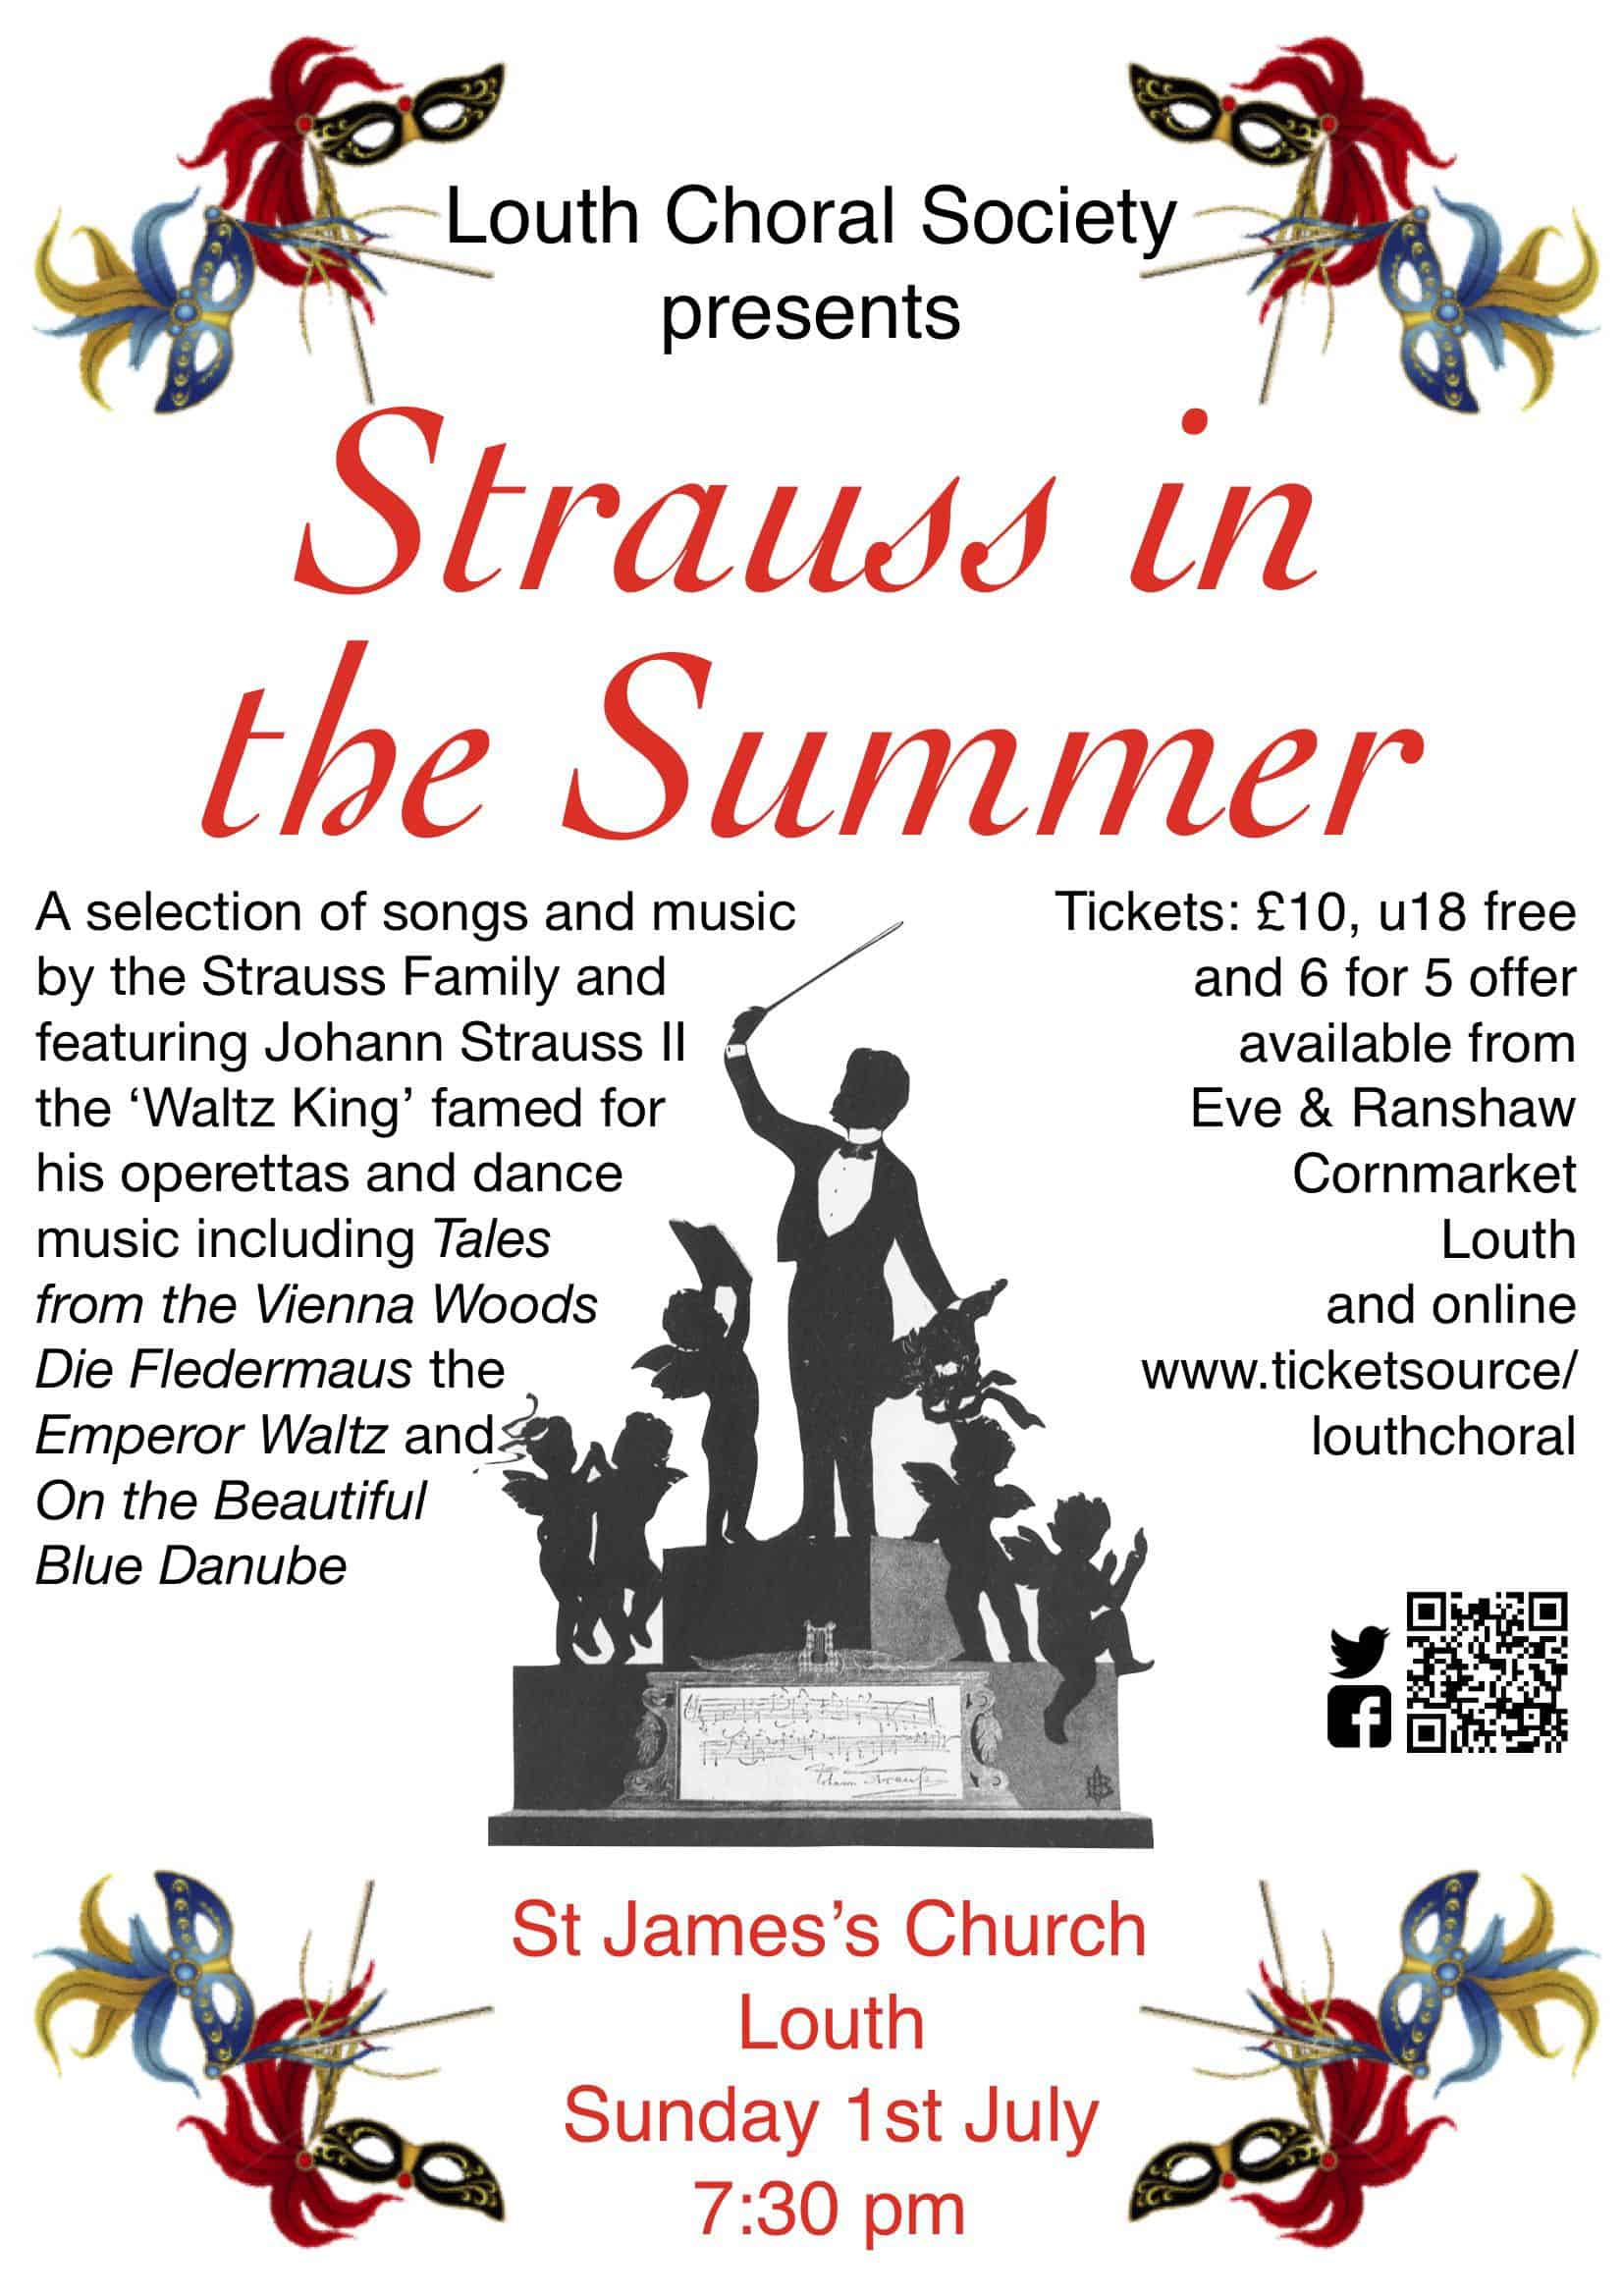 Strauss in the summer